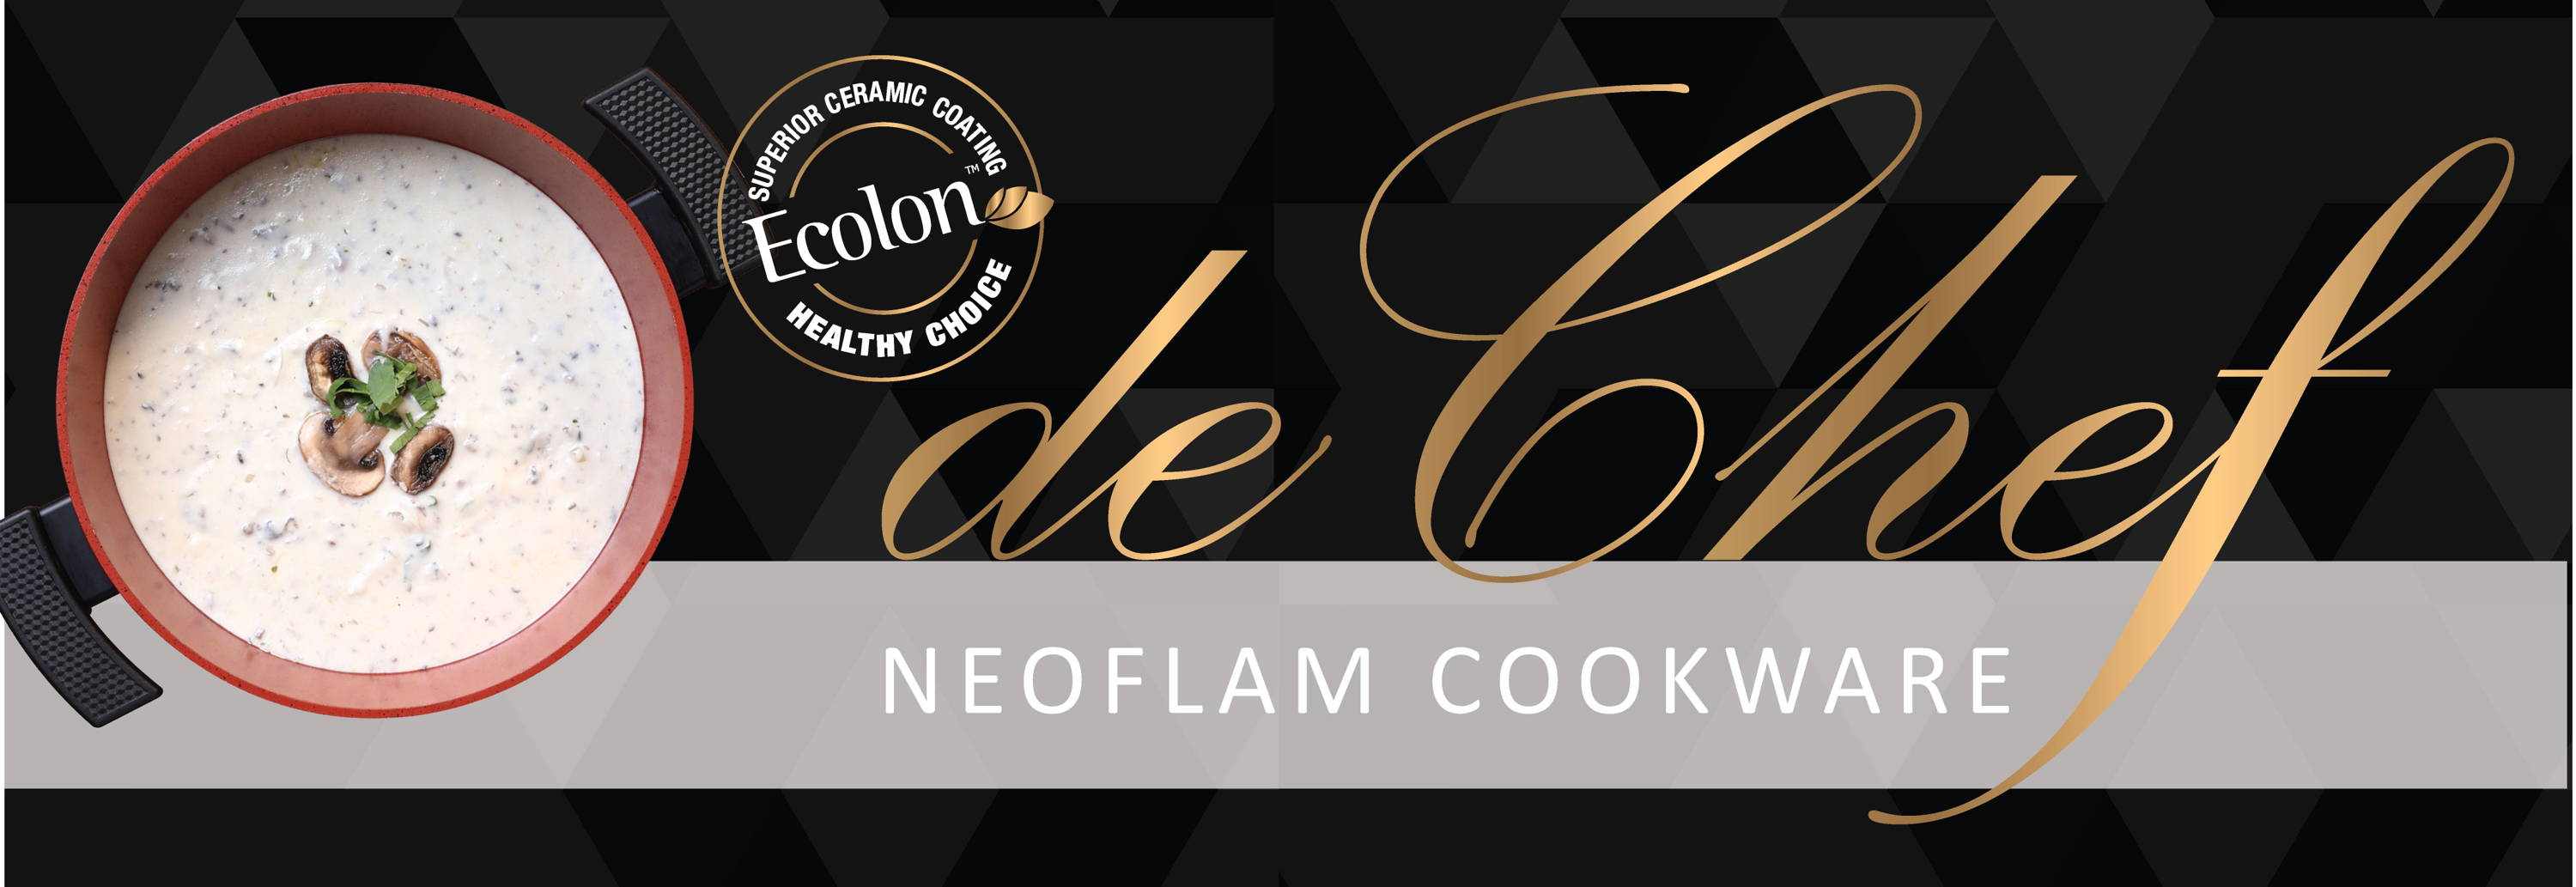 De Chef Neoflam Ecolon Cookware